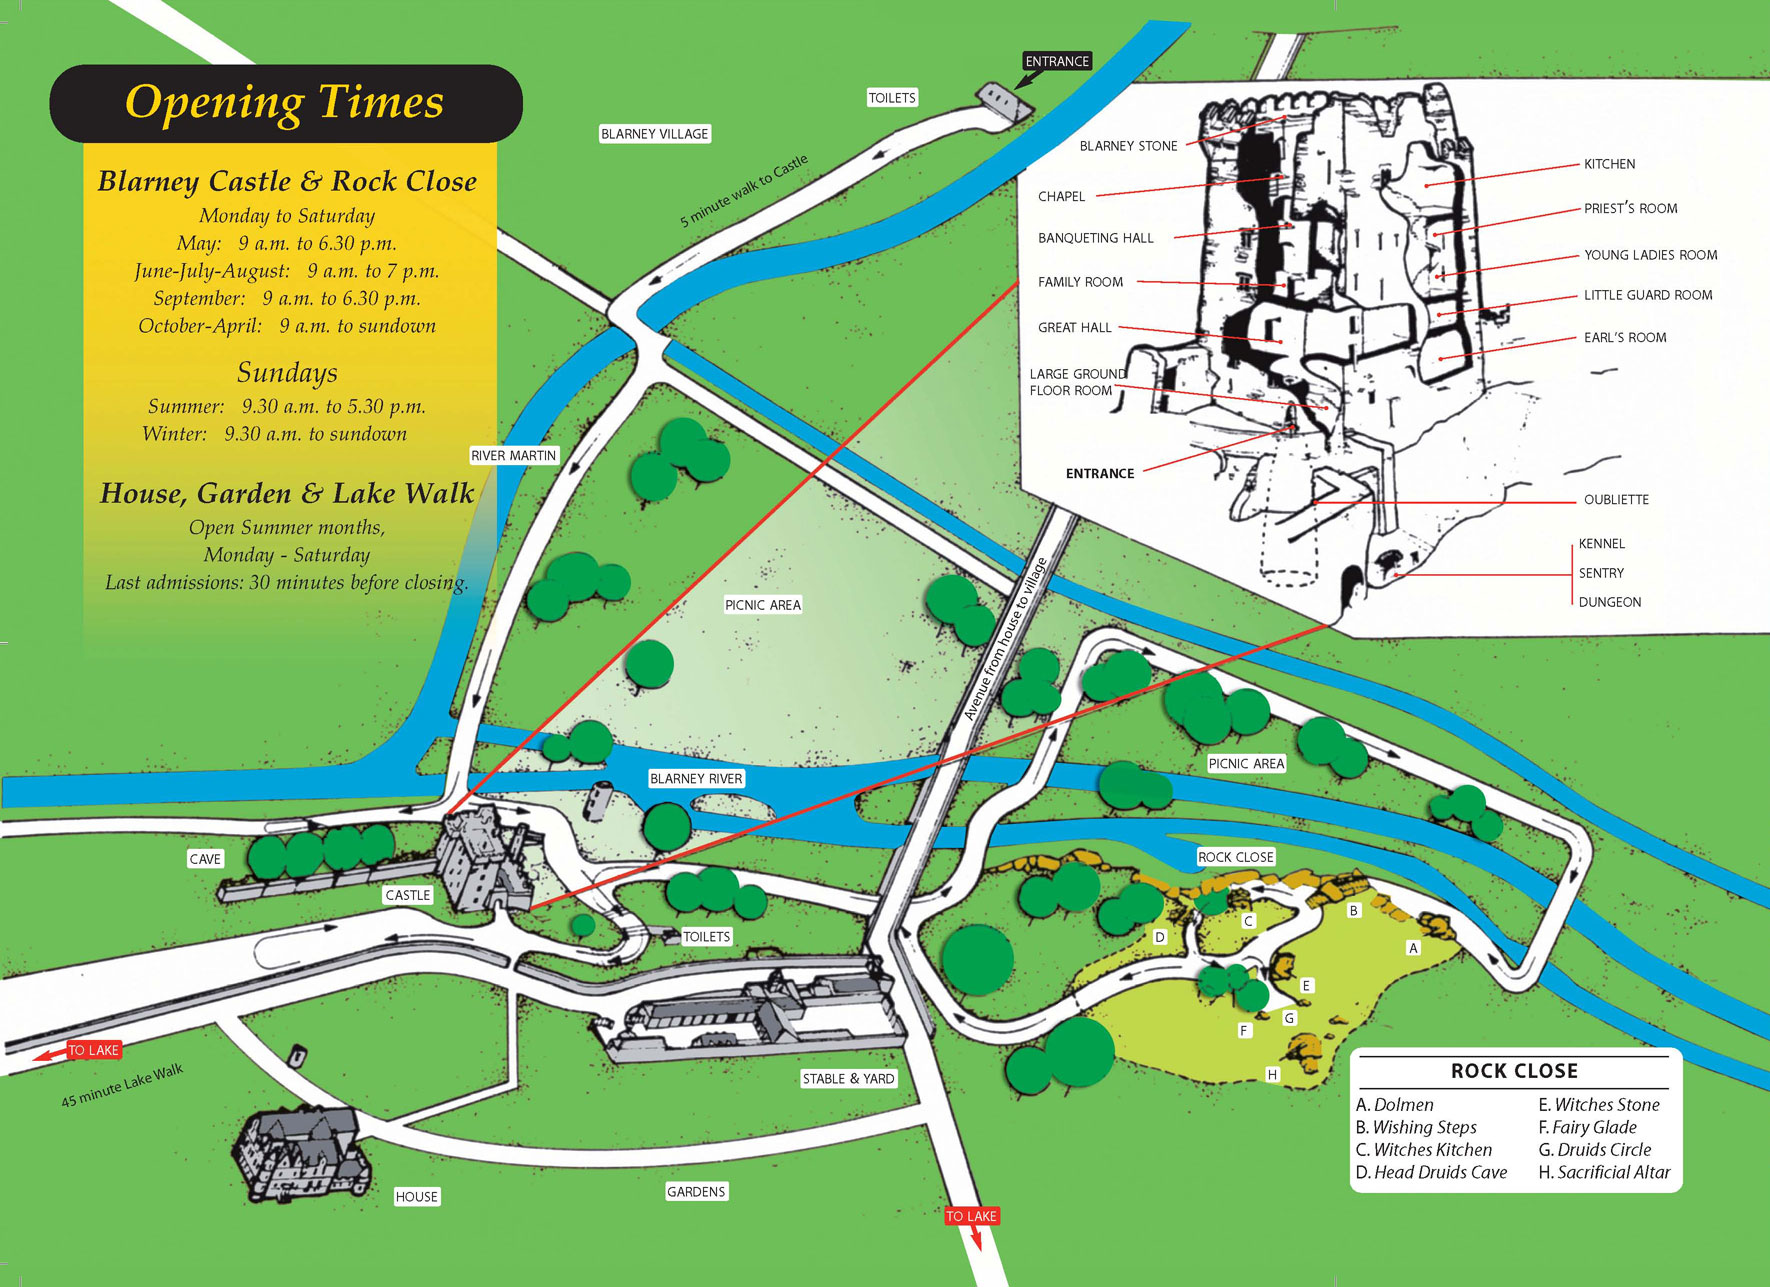 Blarney castle map see map details from blarneycastle ie created 7 17